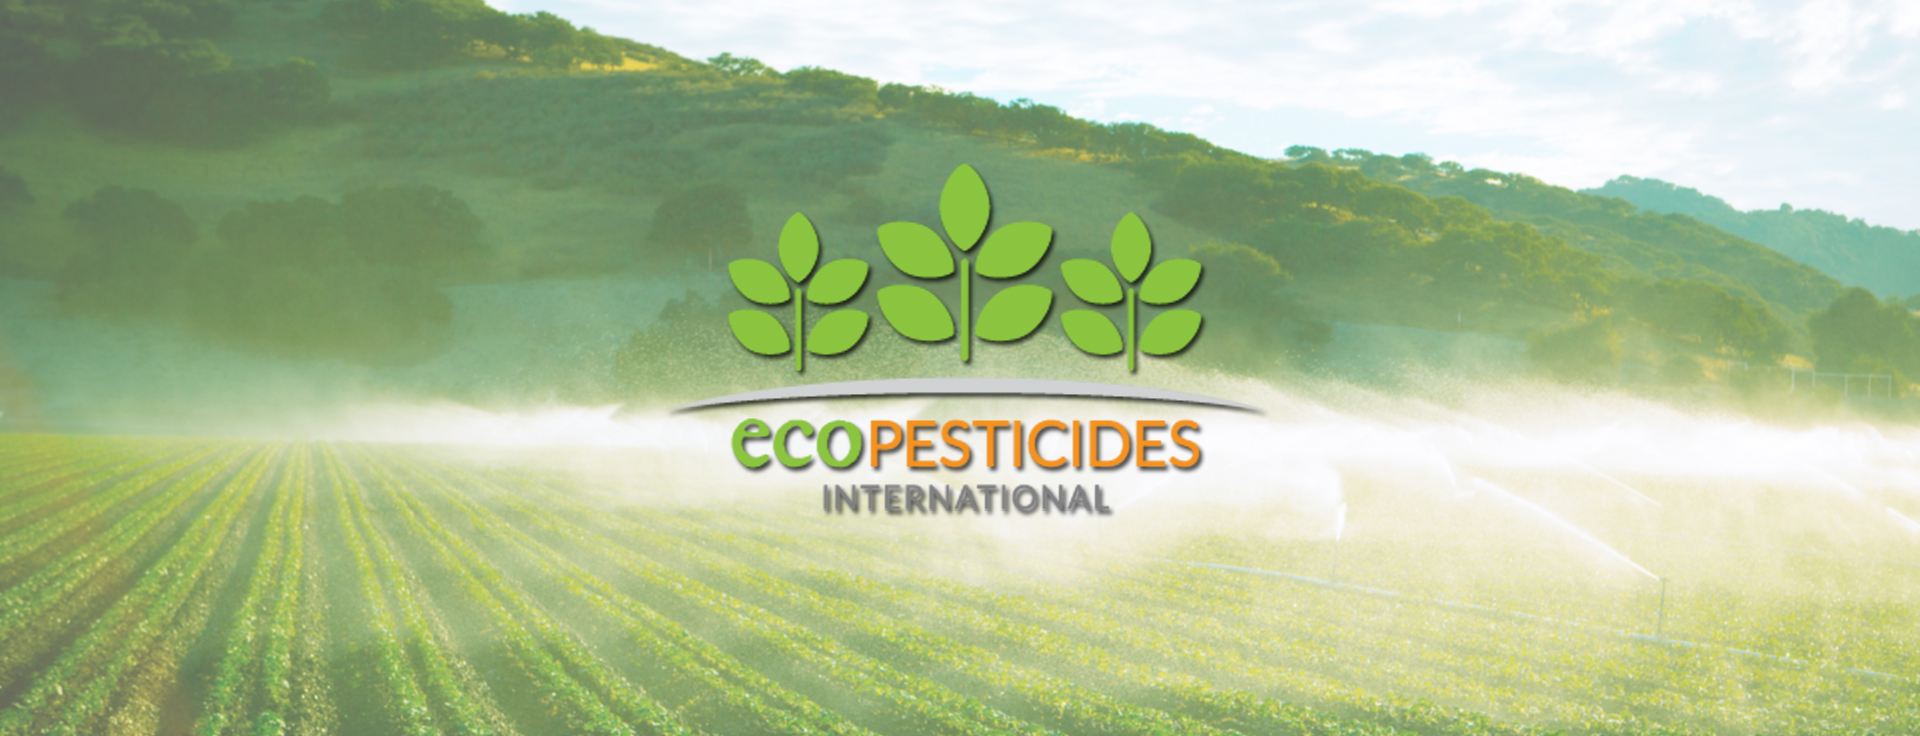 EcoPesticides International